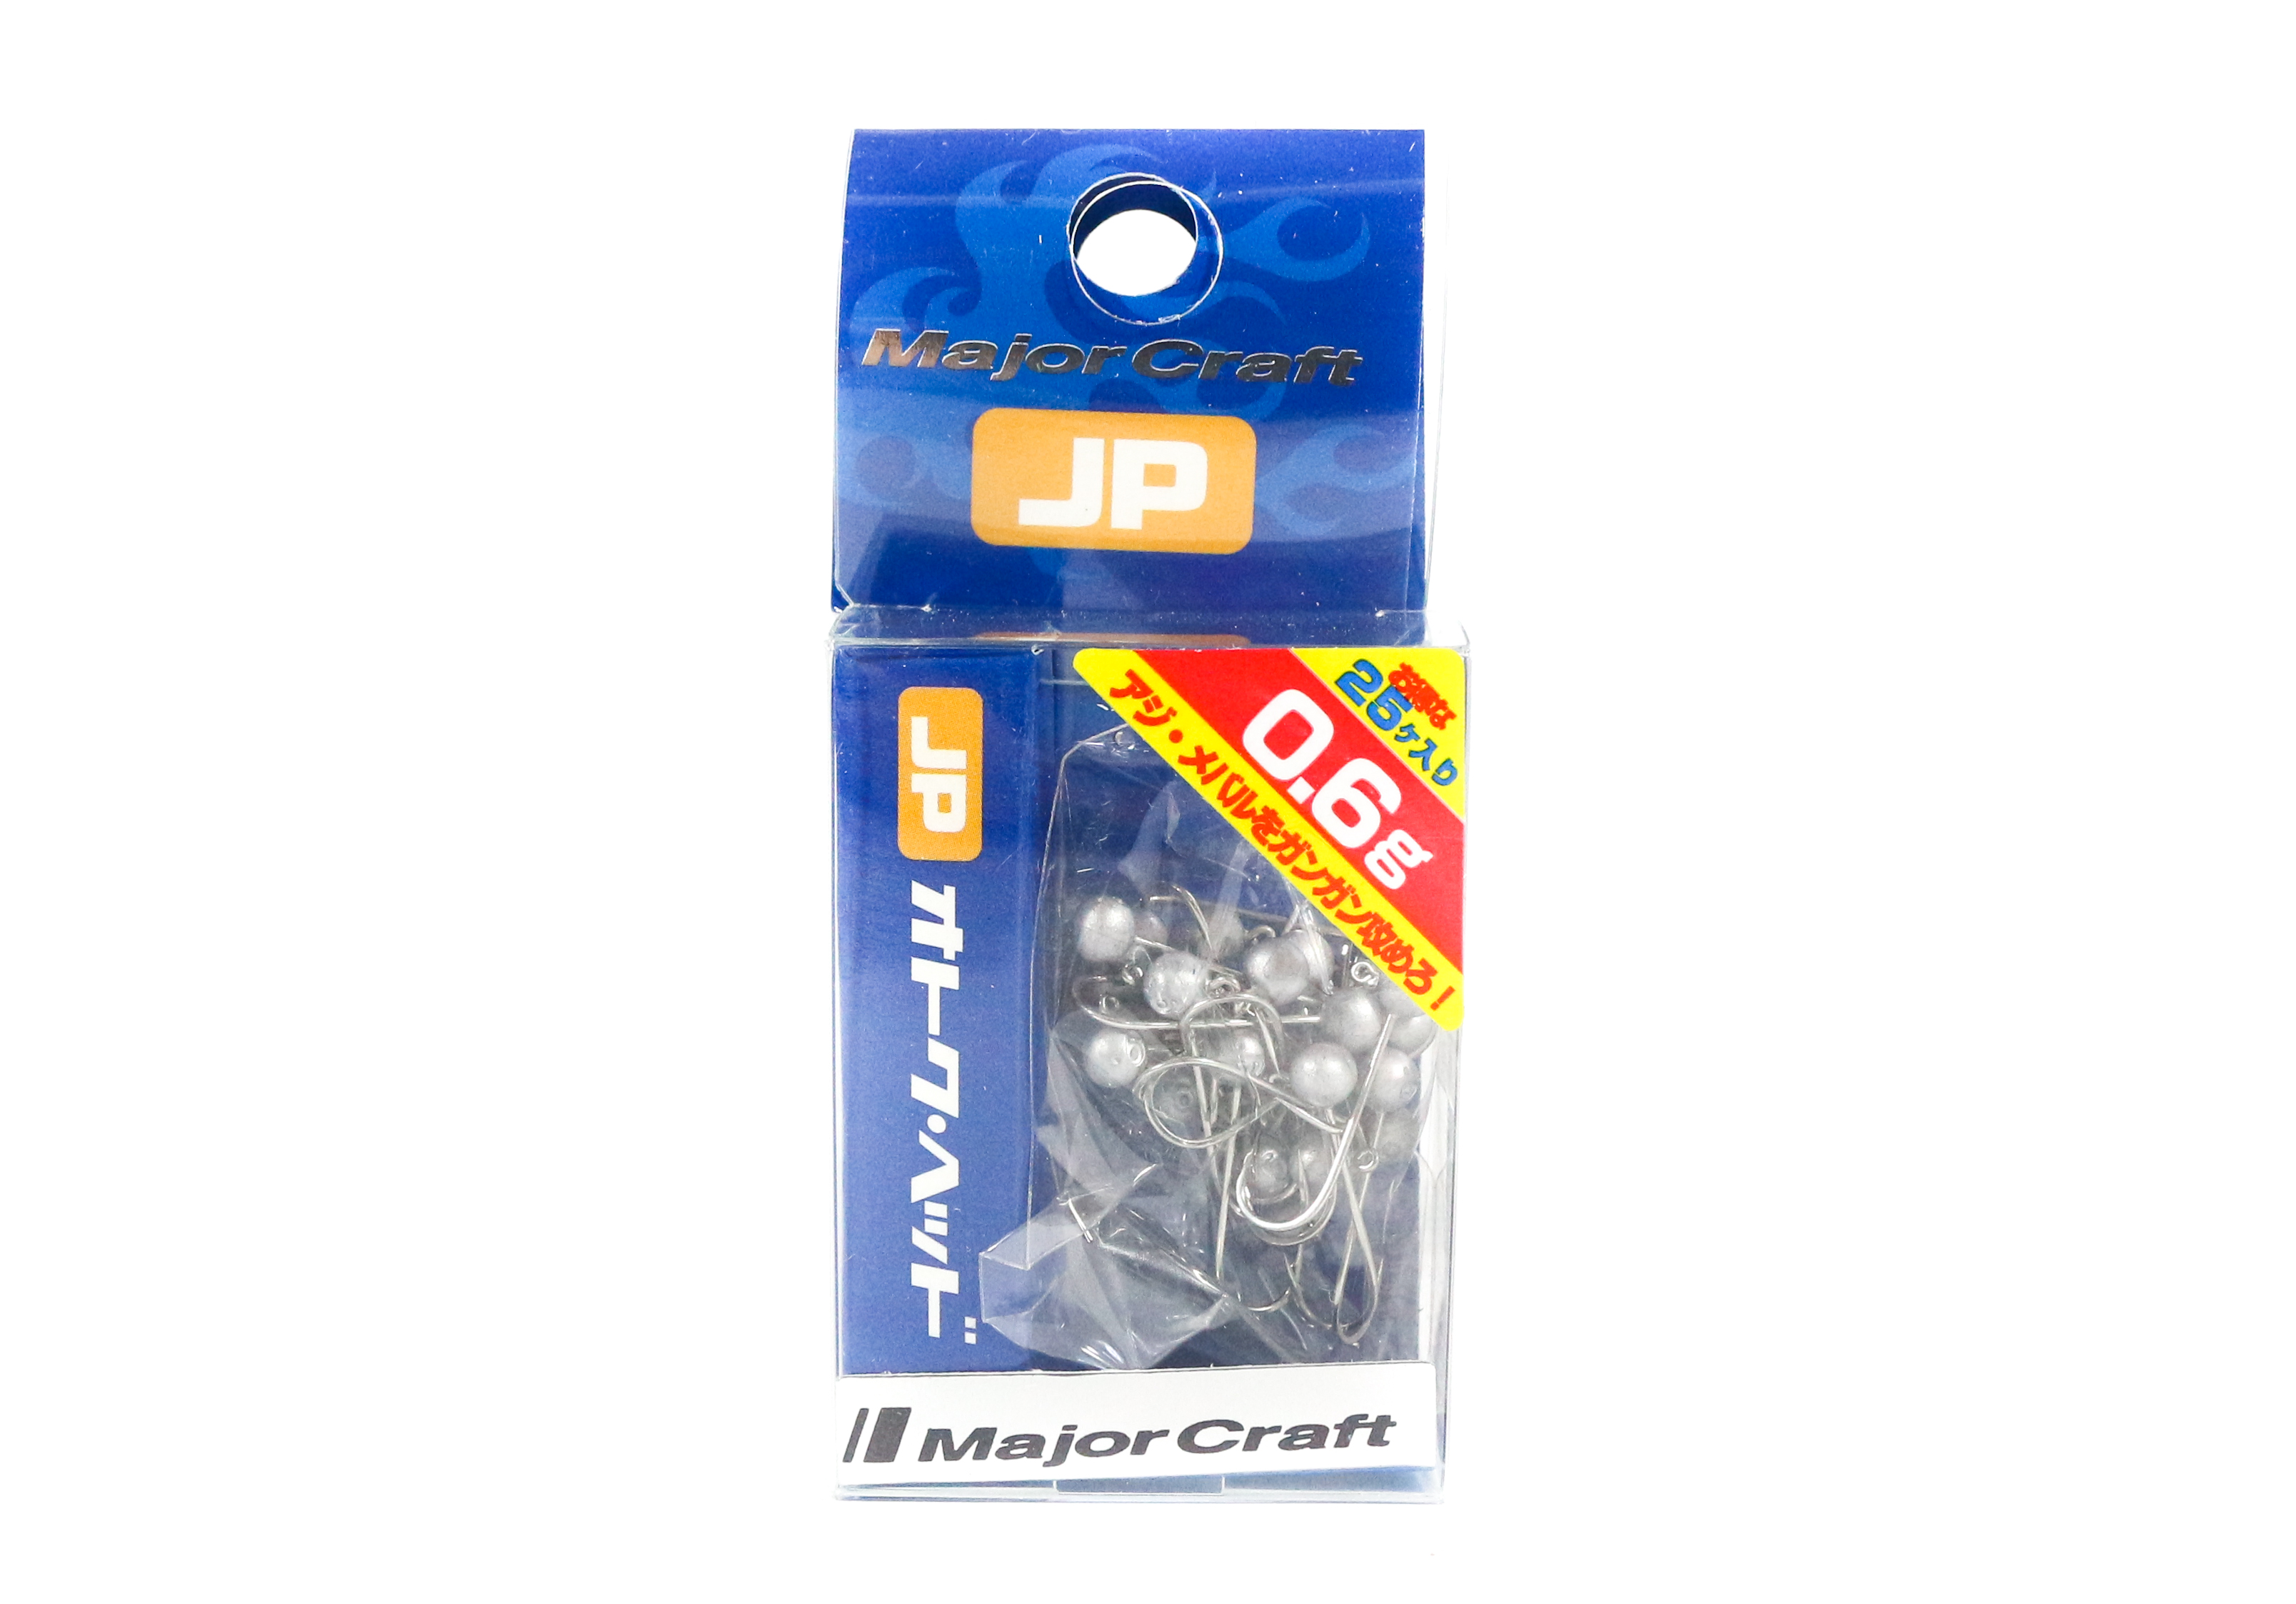 Major Craft Jig Head OTHD-0.6 grams Size 8 25 piece pack (6481)